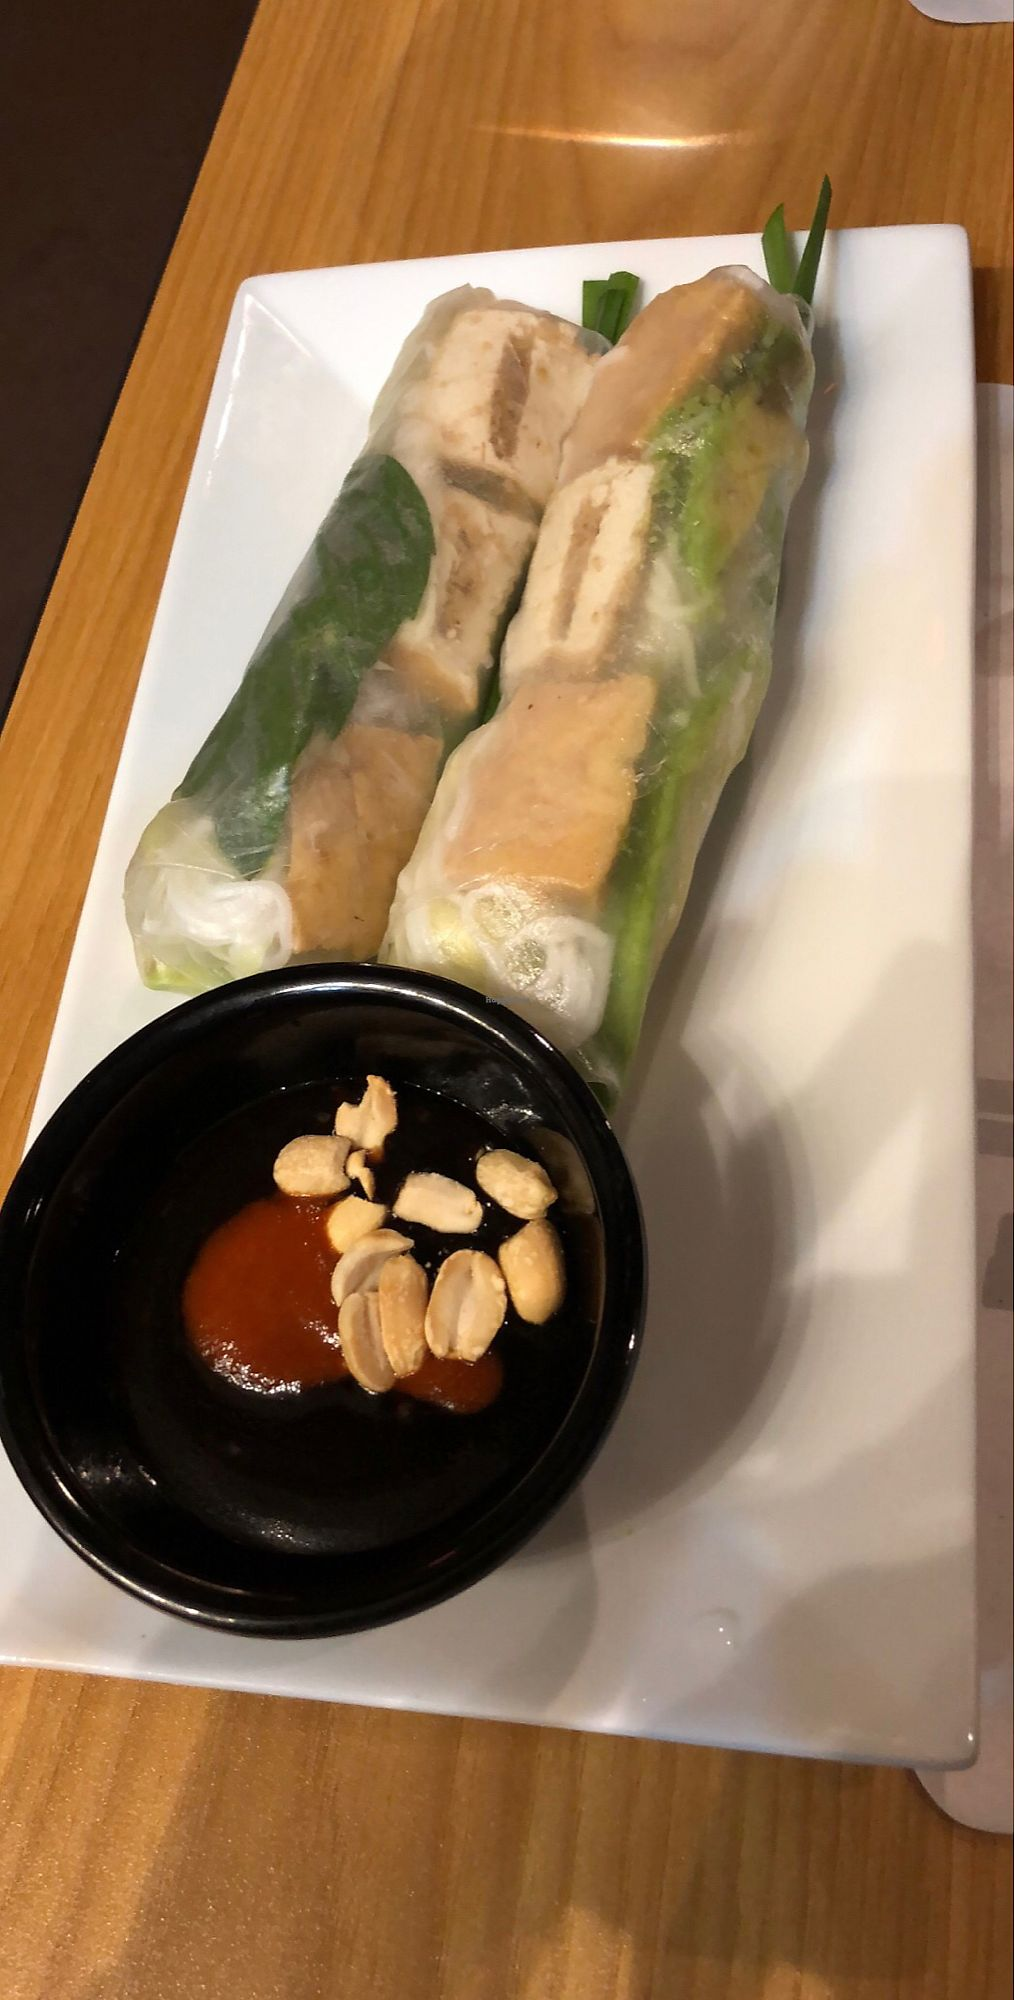 "Photo of Peak of Asia  by <a href=""/members/profile/AshleyJoNix"">AshleyJoNix</a> <br/>Tofu spring rolls with avocado added <br/> January 13, 2018  - <a href='/contact/abuse/image/108719/346127'>Report</a>"